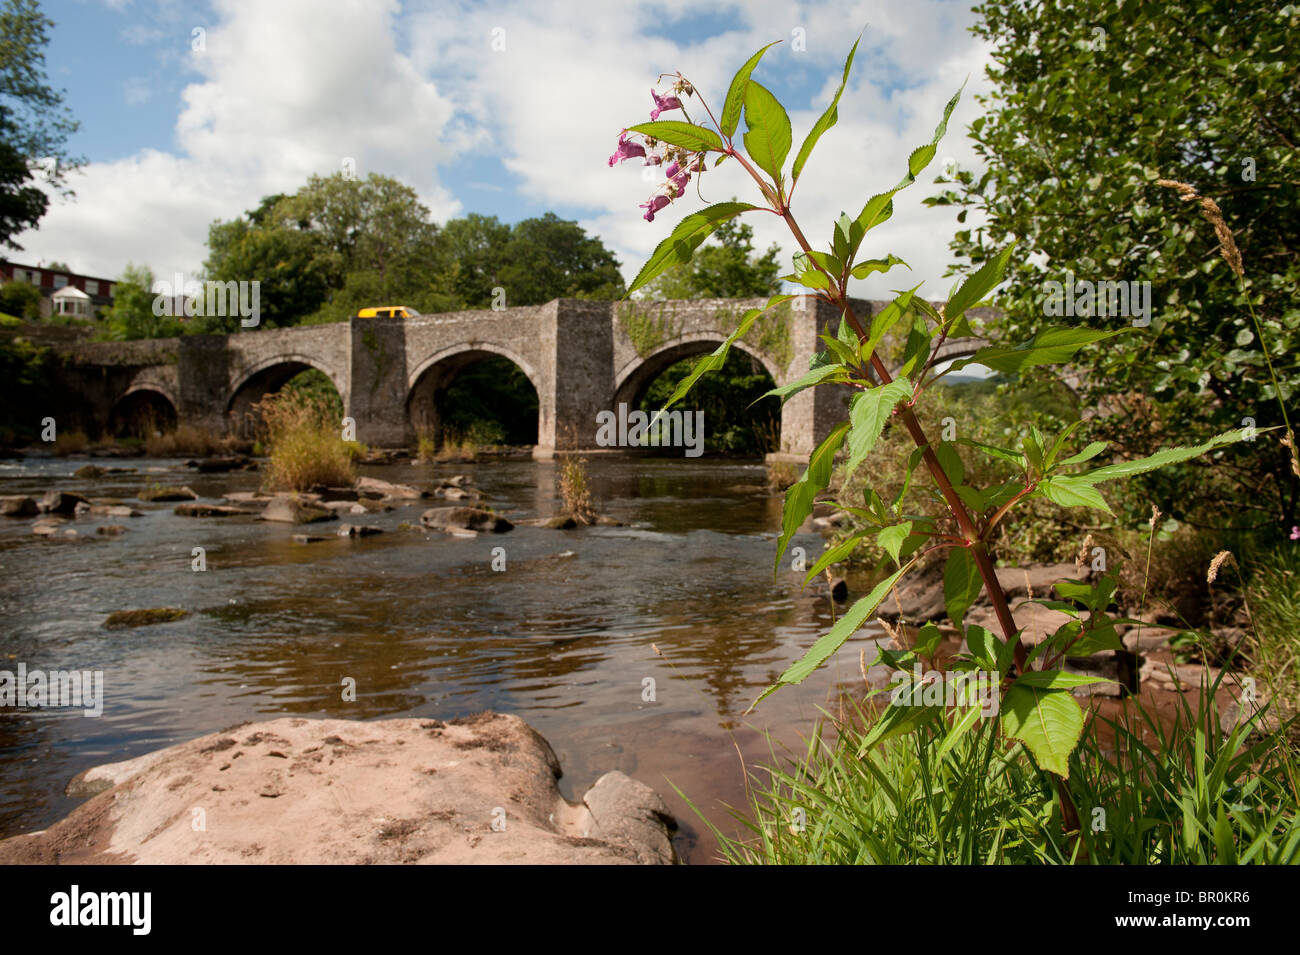 Himalayan Balsam plant growing by Old bridge over the River Usk at Llangynidr, Powys, Wales UK - Stock Image